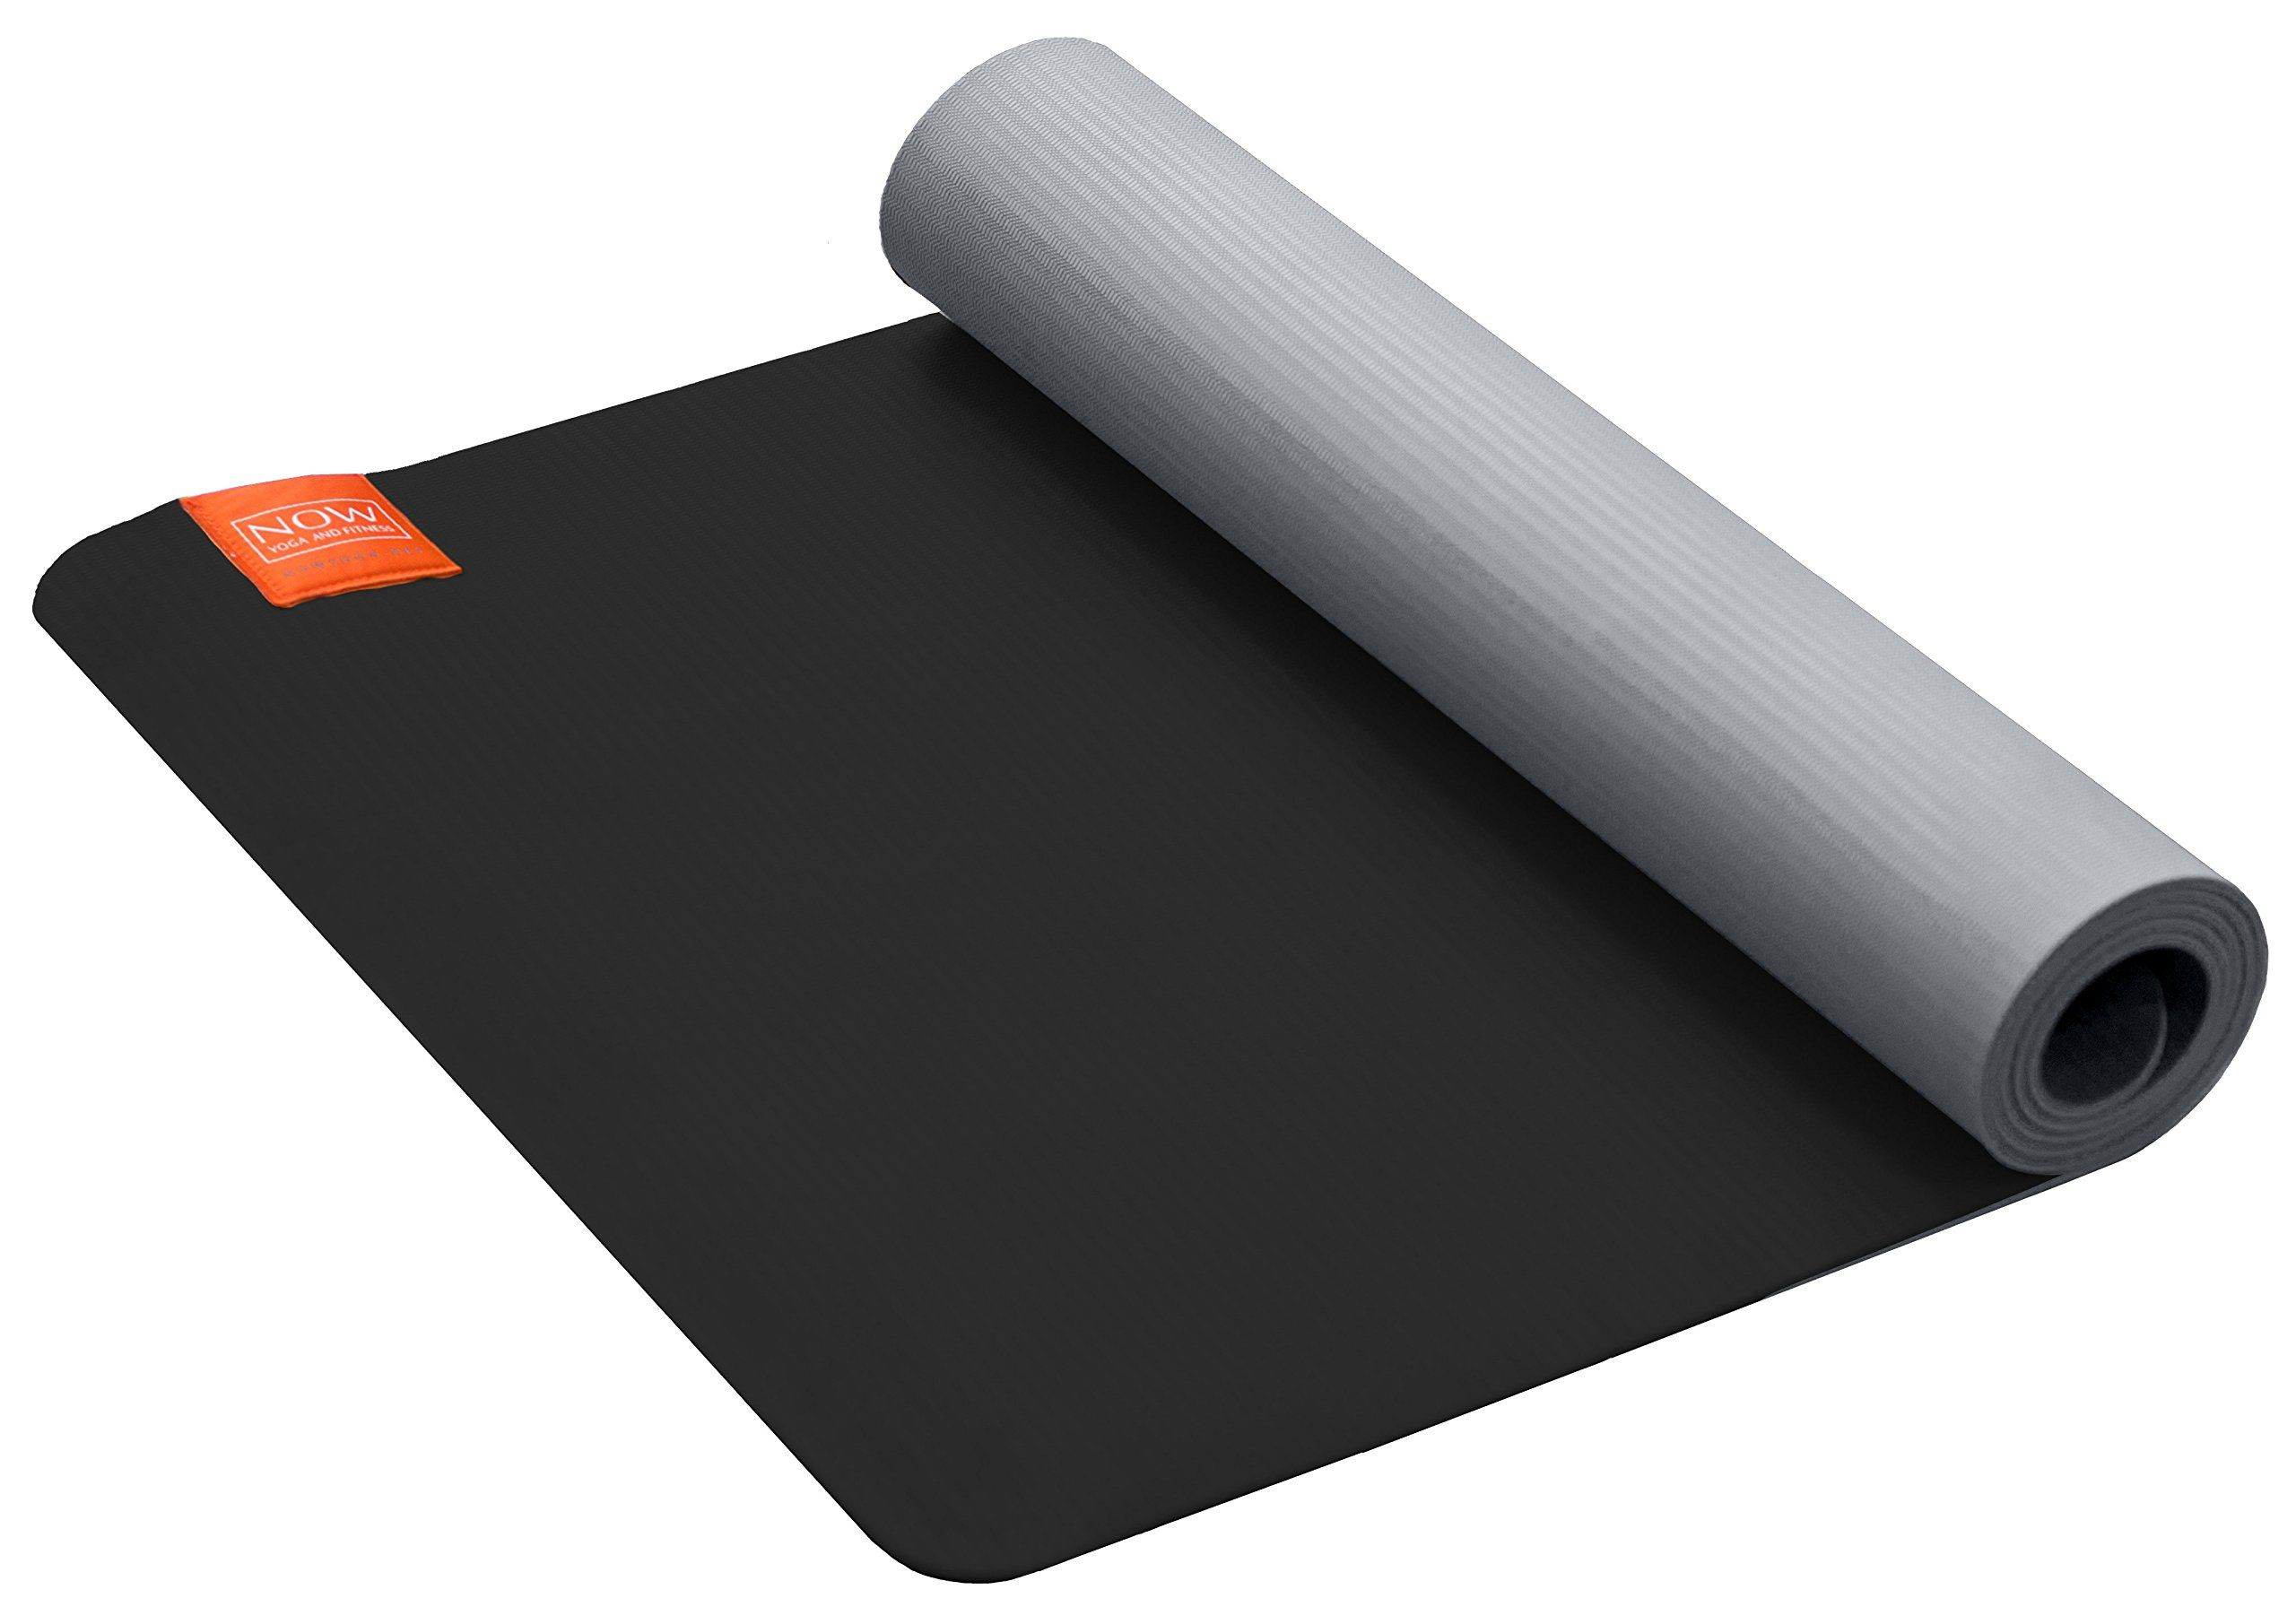 mats reviews workout soft amazon customer in com pcr rated padding rubber stalwart mat eva floor interlocking tiles best by exercising flooring for foam helpful